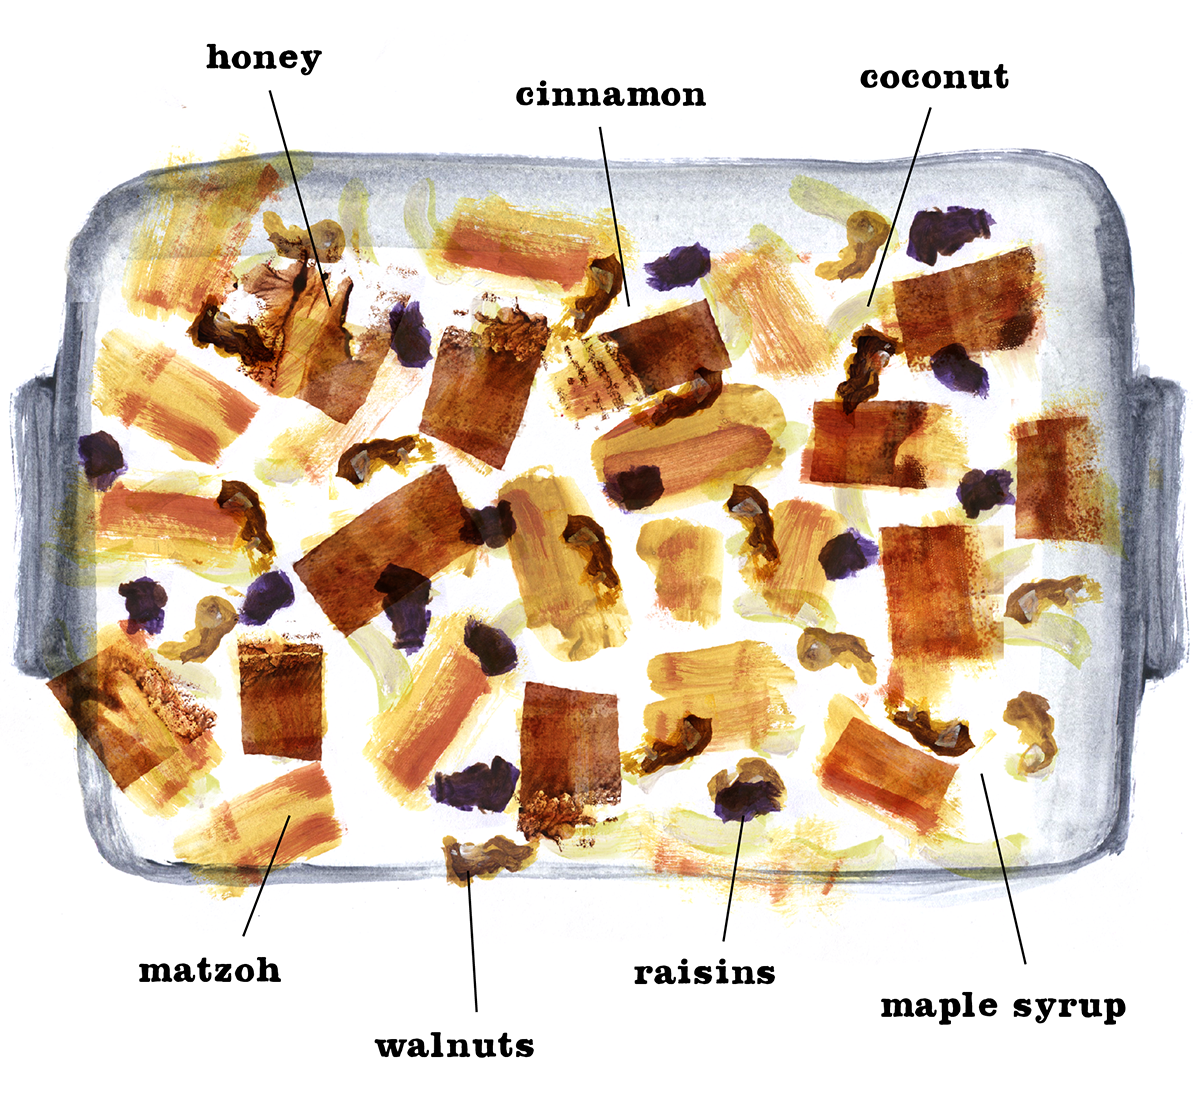 Matzoh Granola, Passover, Breakfast, Lauren Monaco Illustration